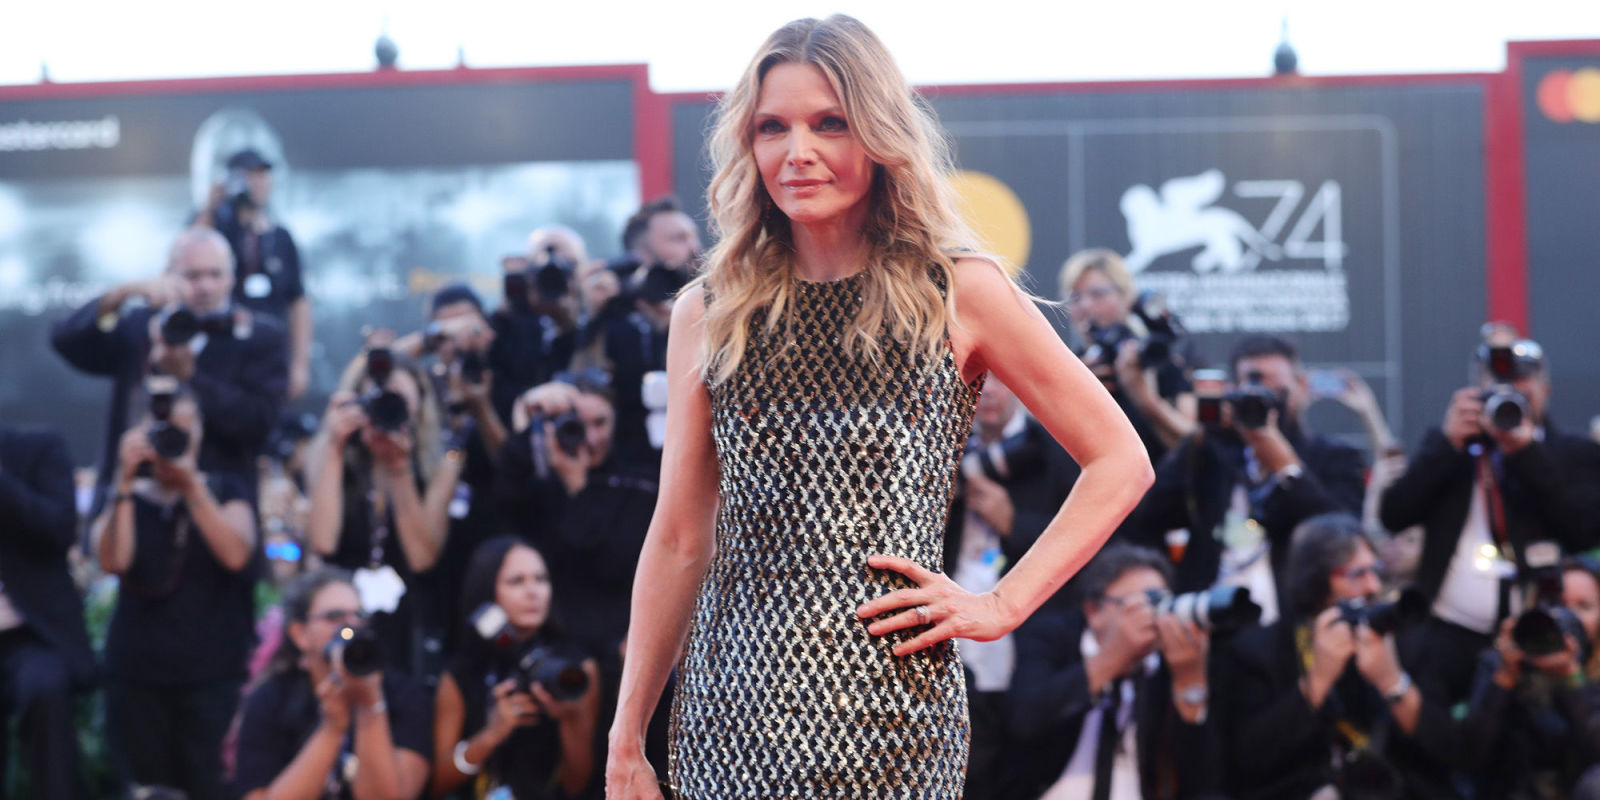 Michelle Pfeiffer Opens Up About Why She 'Disappeared' from Hollywood